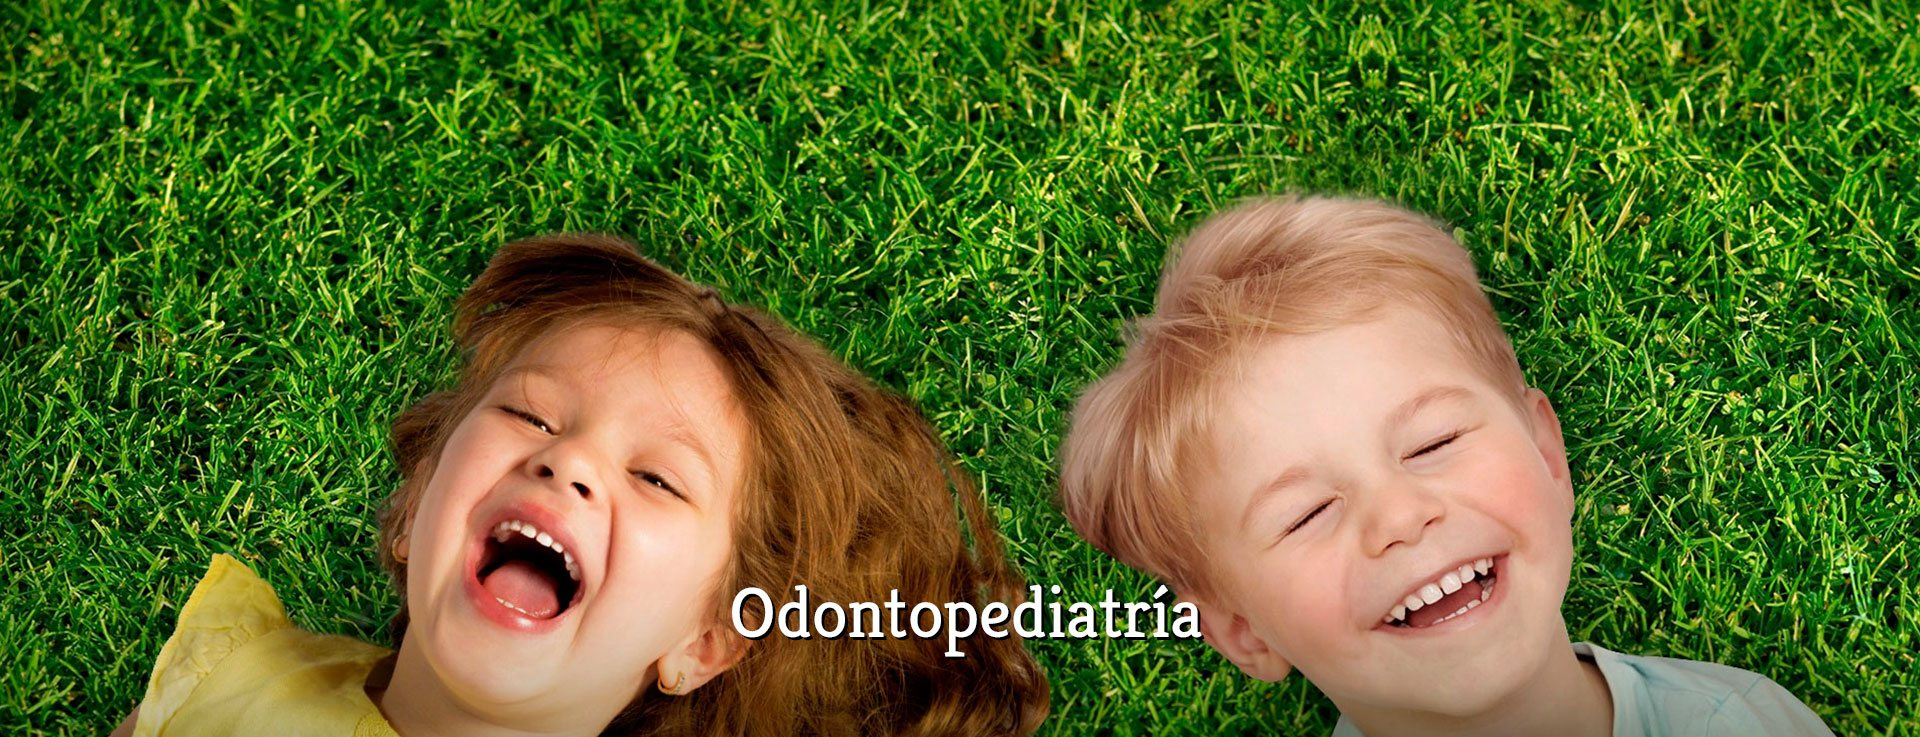 Odontopediatría - Clínica Corpodental